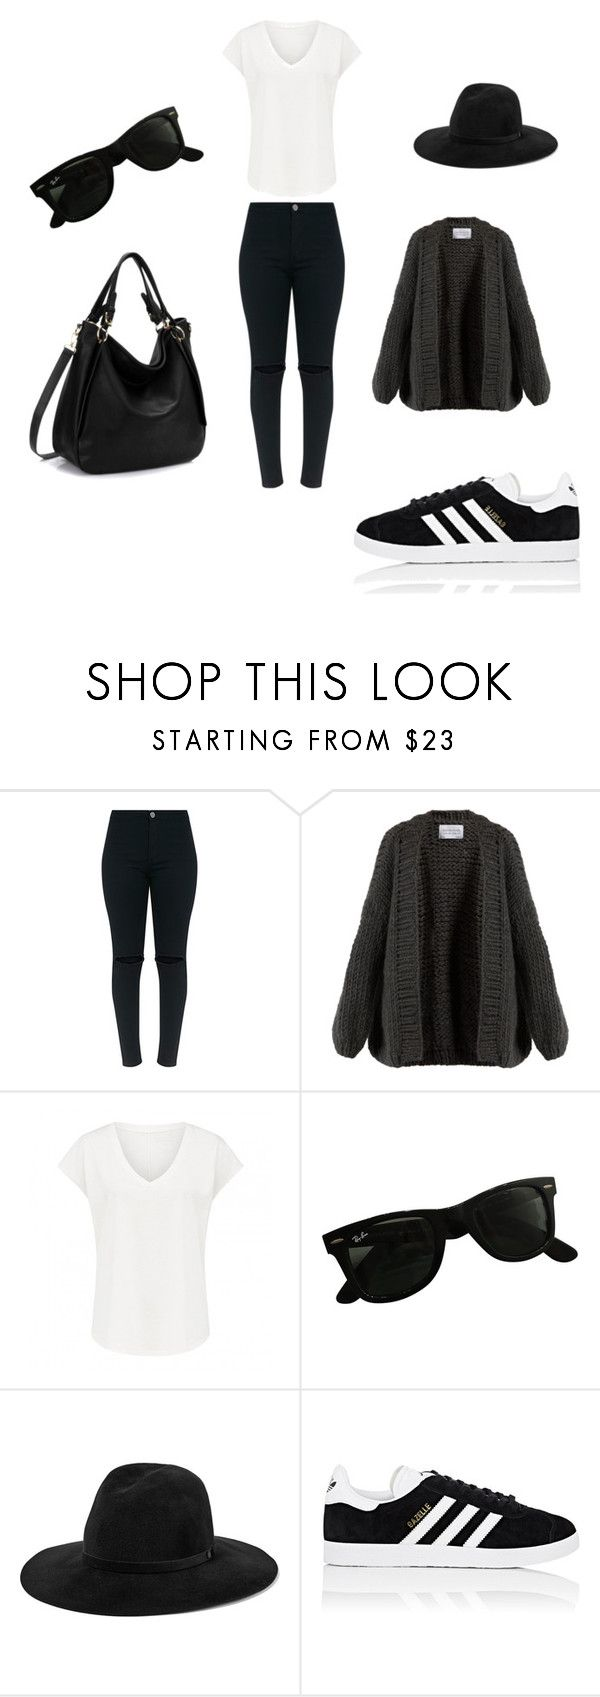 """Urbano. Viernes Casual (35 años)"" by jesica-cropanese on Polyvore featuring moda, I Love Mr. Mittens, Ray-Ban, rag & bone y adidas"